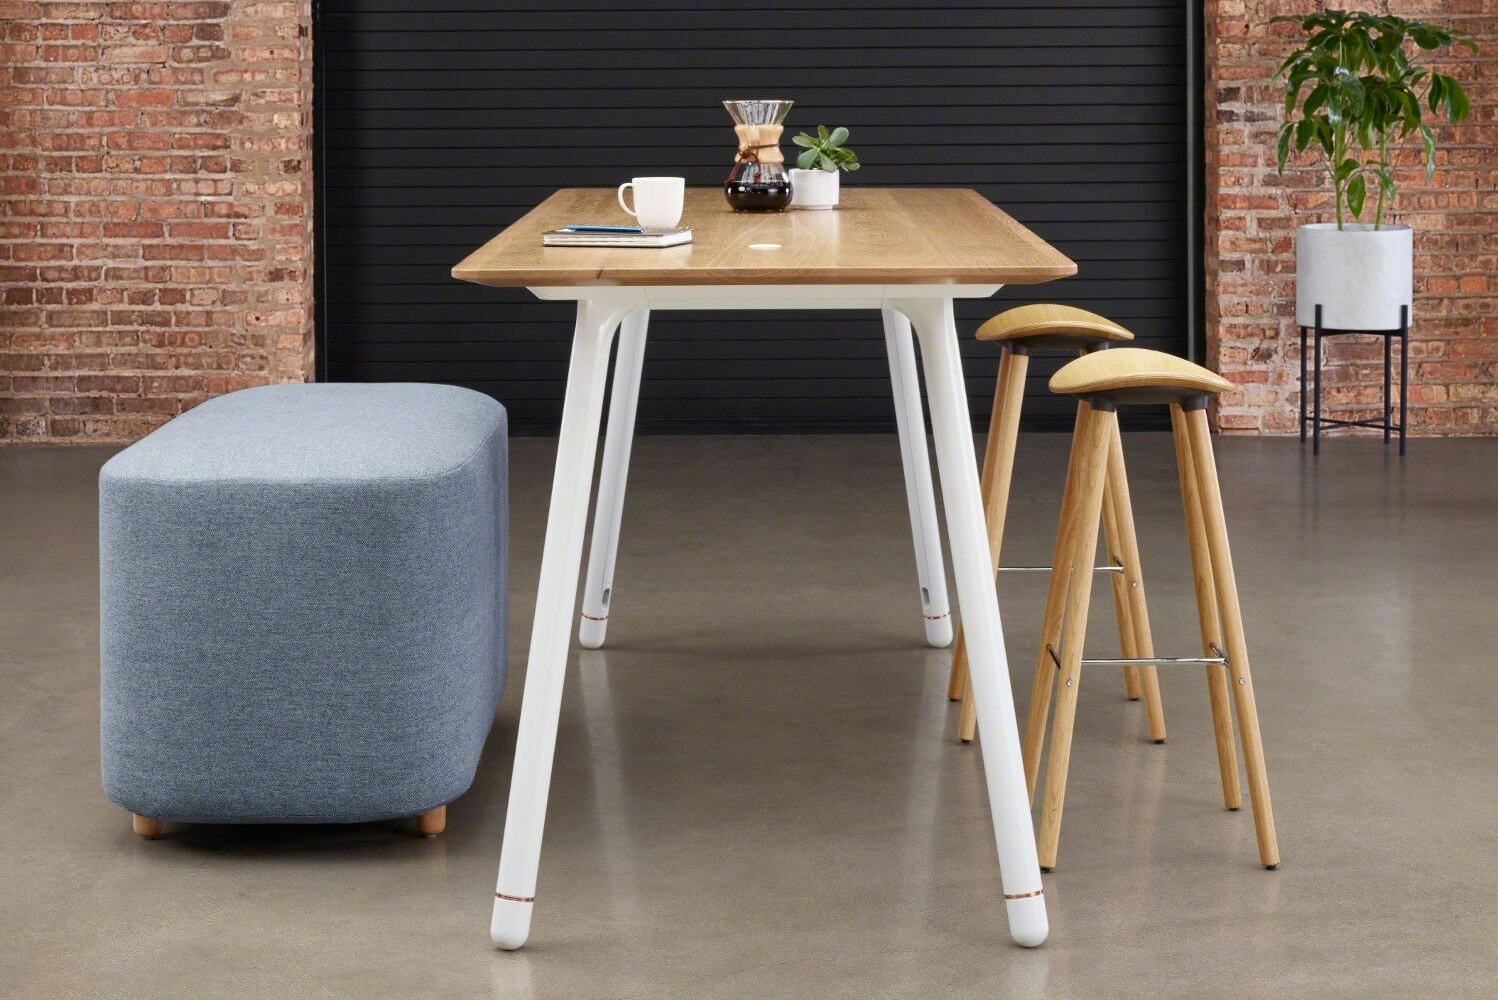 Table top material choices include laminate, veneer, Corian or back painted glass.